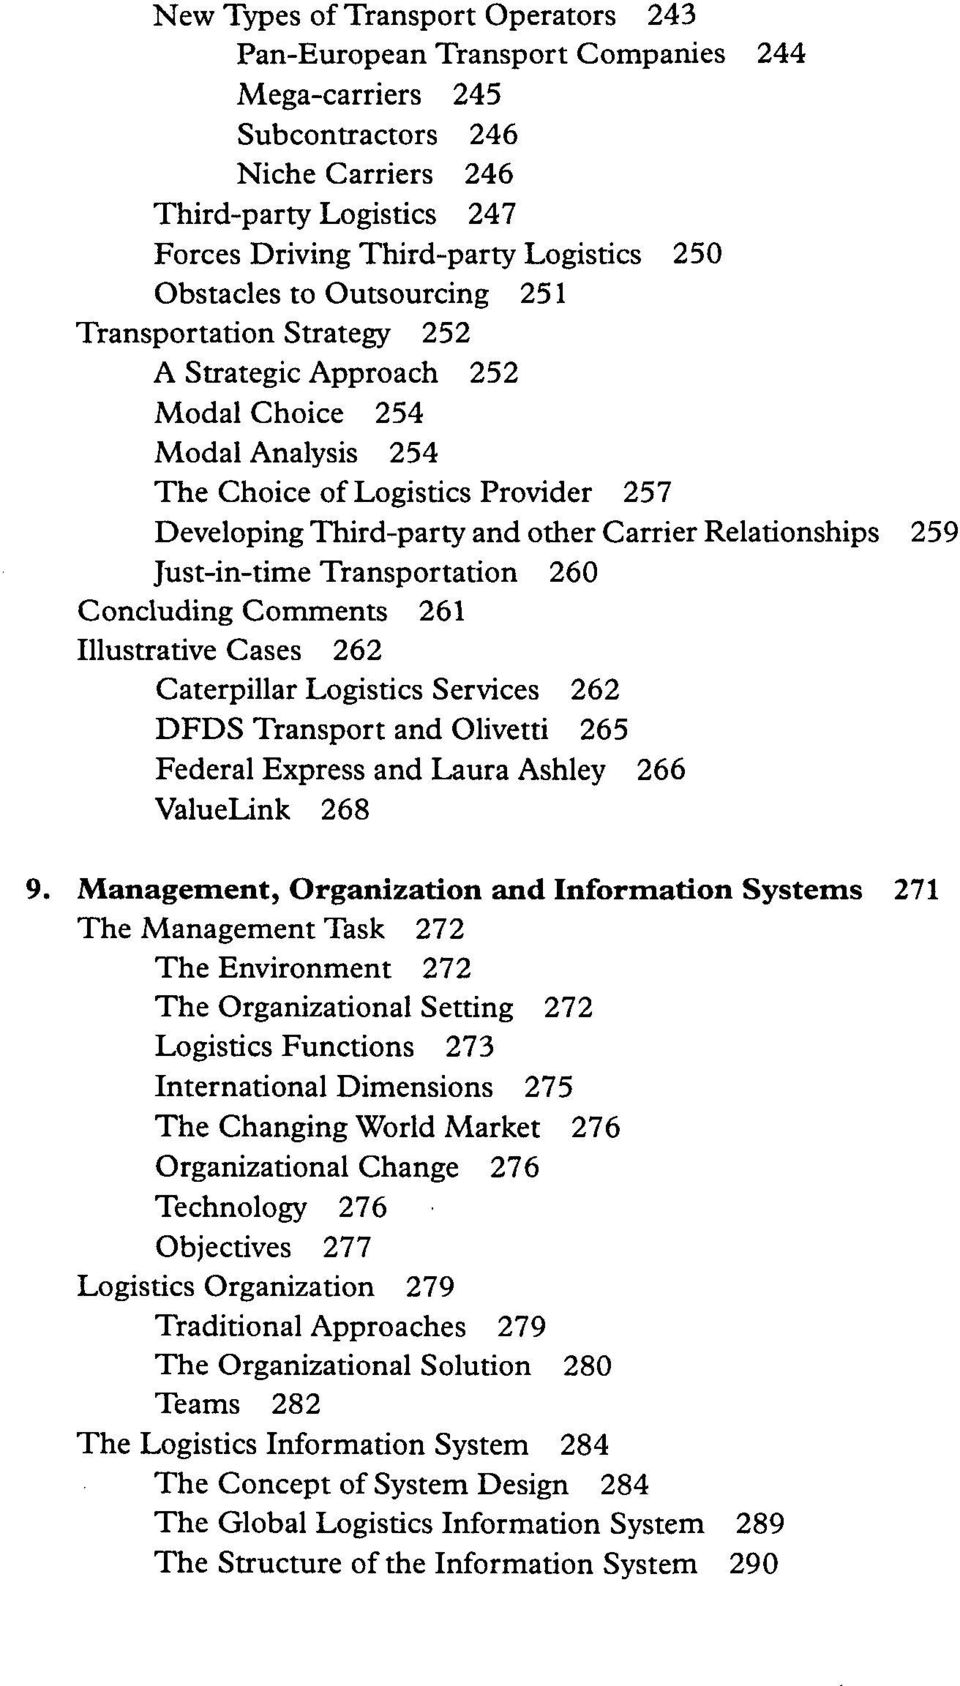 Relationships 259 Just-in-time Transportation 260 Concluding Comments 261 Illustrative Cases 262 Caterpillar Logistics Services 262 DFDS Transport and Olivetti 265 Federal Express and Laura Ashley